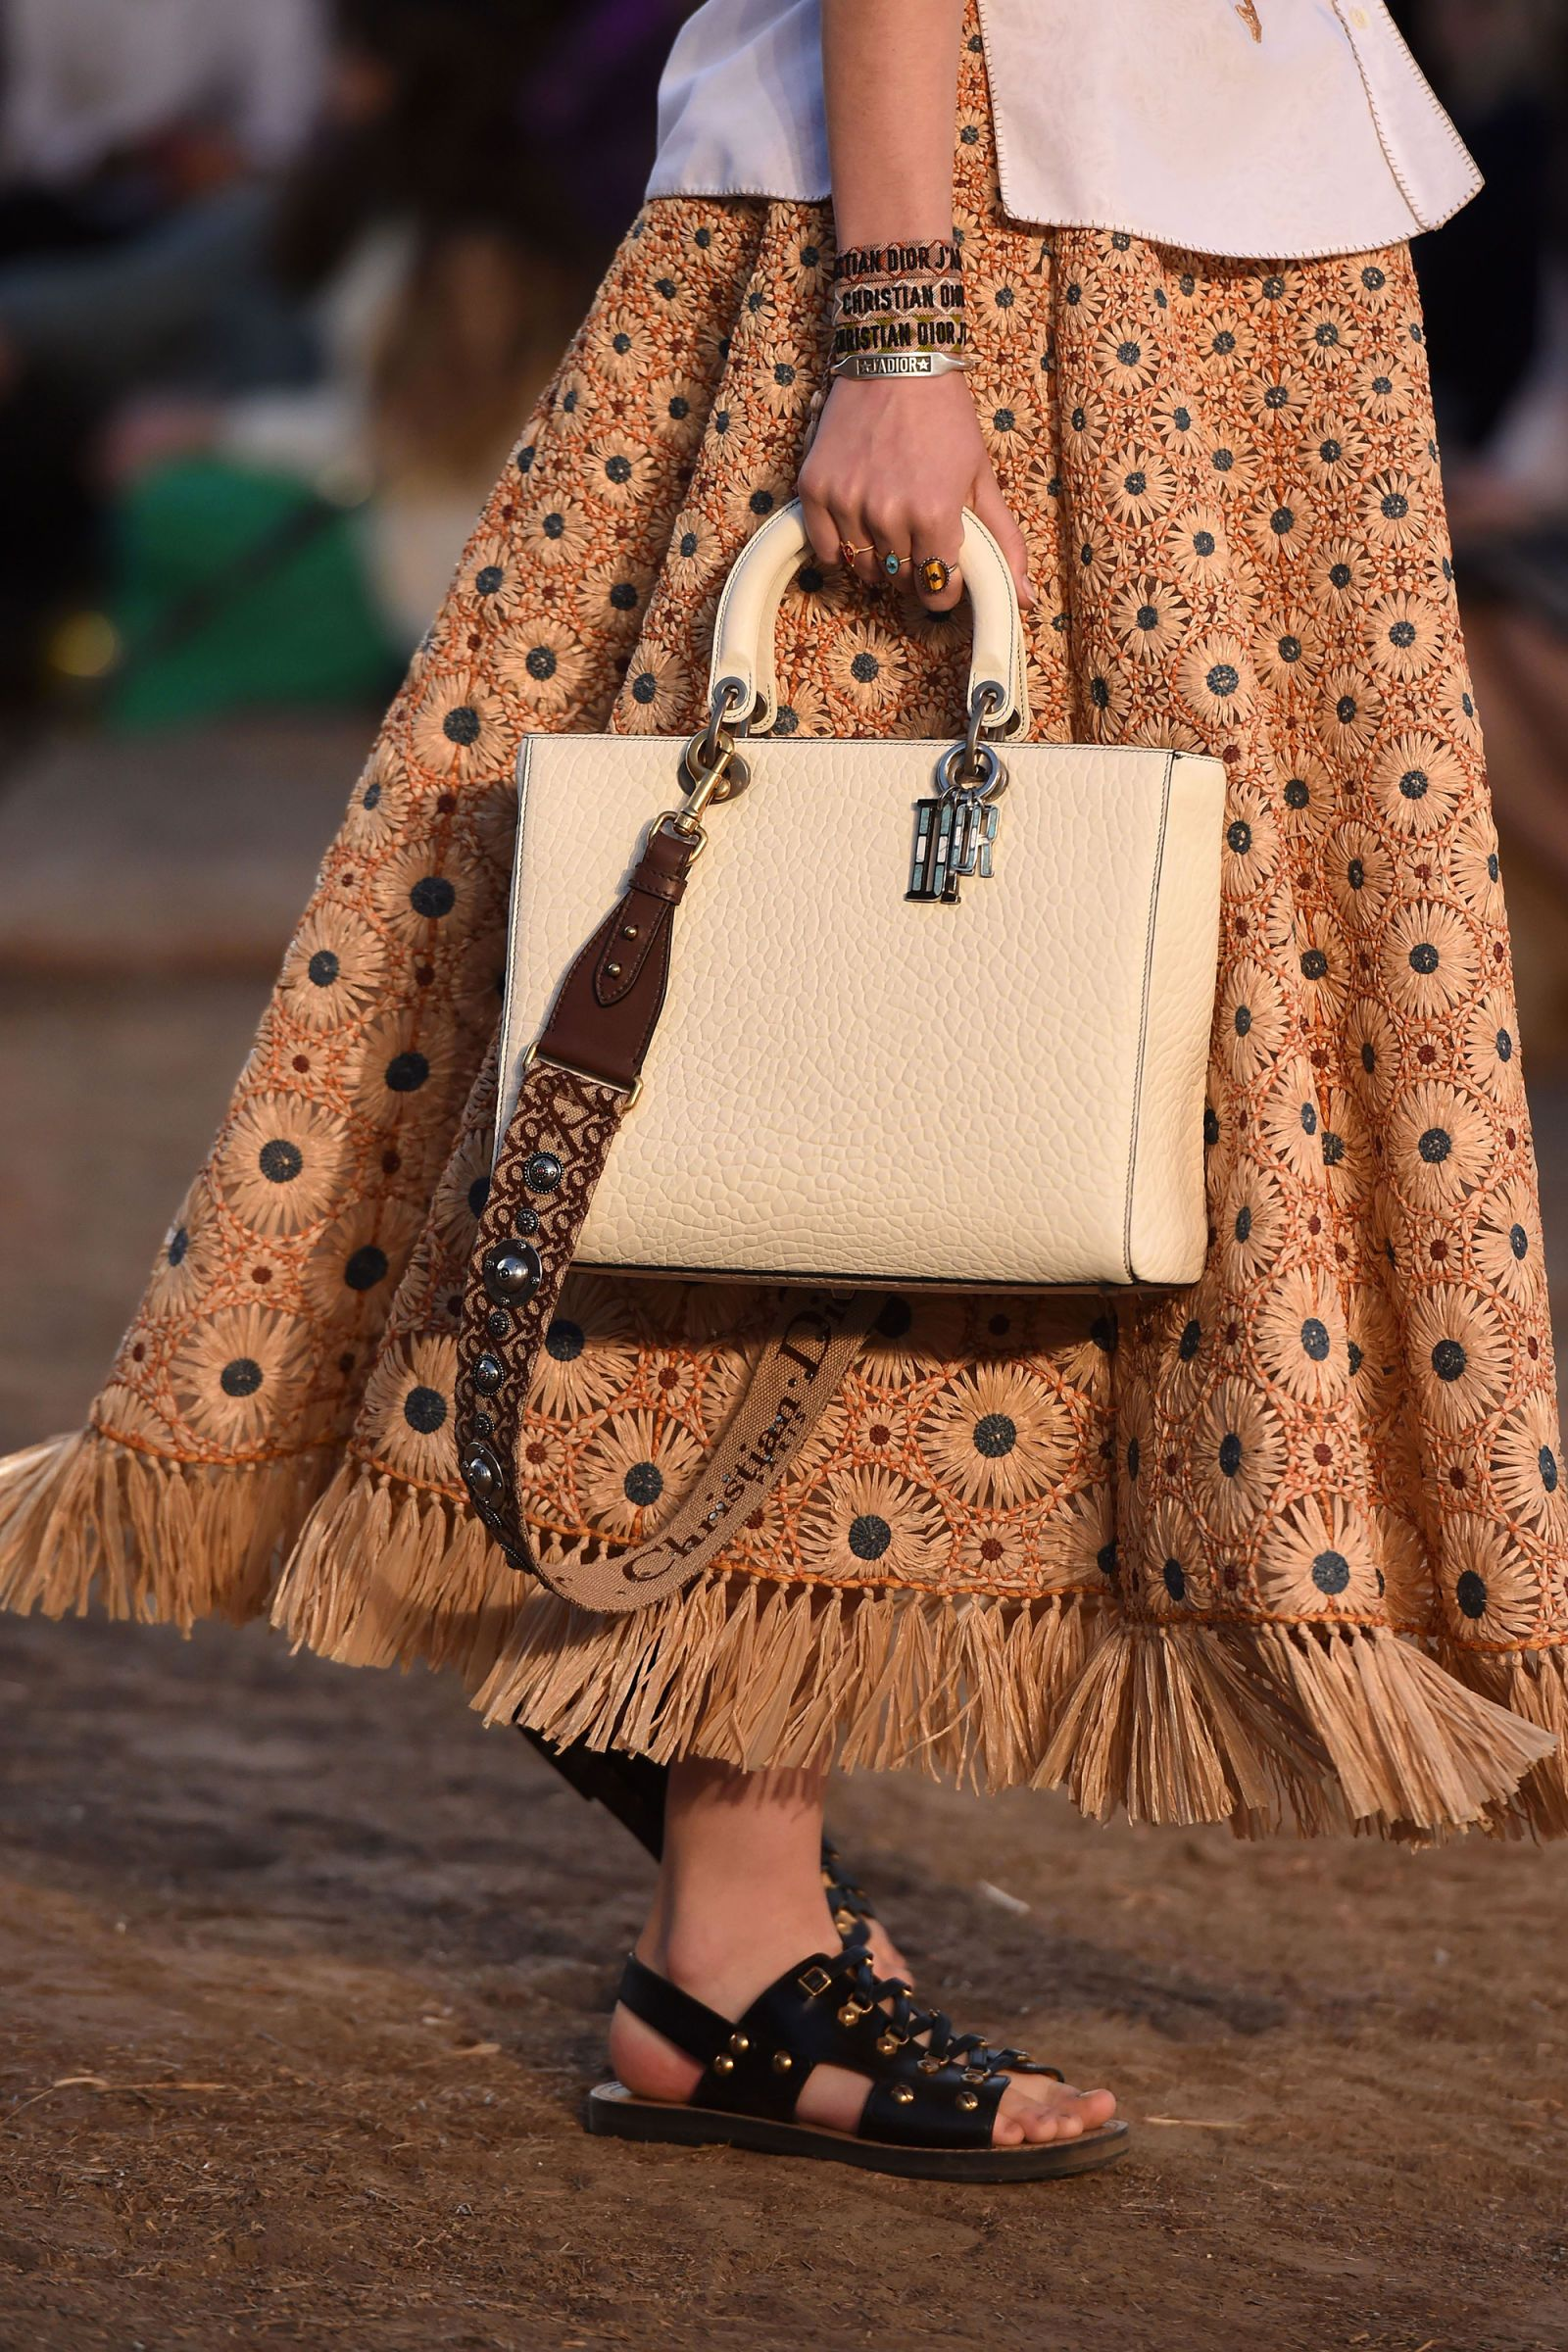 Resort Dior bag preview pictures